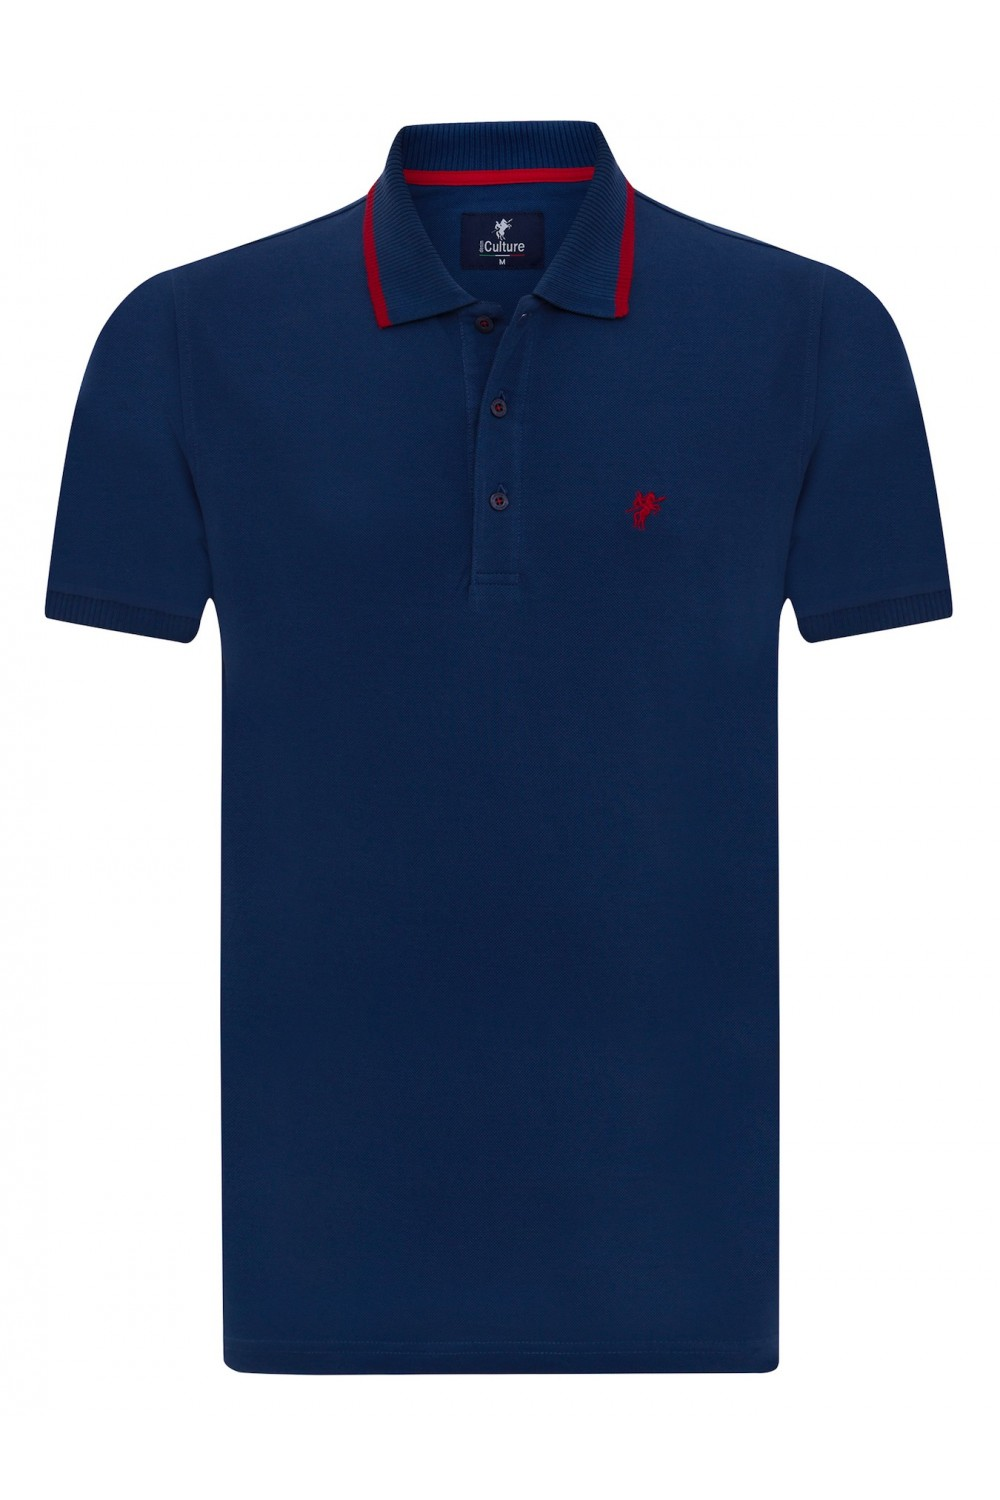 Men's Poloshirt Knitted Marine Cotton